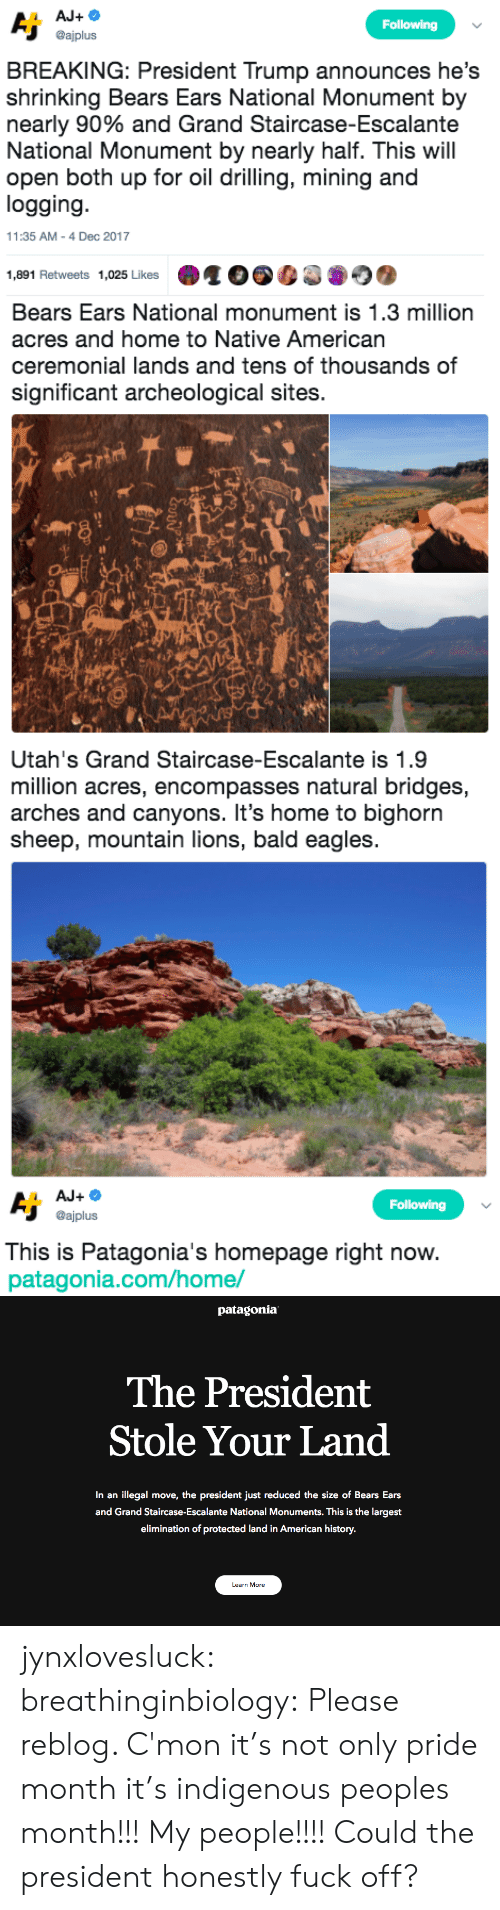 Native American: Following  @ajplus  BREAKING: President Trump announces he's  shrinking Bears Ears National Monument by  nearly 90% and Grand Staircase-Escalante  National Monument by nearly half. This will  open both up for oil drilling, mining and  logging  11:35 AM-4 Dec 2017  1,891 Retweets 1,025 Likes   Bears Ears National monument is 1.3 million  acres and home to Native American  ceremonial lands and tens of thousands of  significant archeological sites.  sh   Utah's Grand Staircase-Escalante is 1.9  million acres, encompasses natural bridges,  arches and canyons. It's home to bighorn  sheep, mountain lions, bald eagles   Following  @ajplus  This is Patagonia's homepage right now  patagonia.com/home/   patagonia  The President  Stole Your Land  In an illegal move, the president just reduced the size of Bears Ears  and Grand Staircase-Escalante National Monuments. This is the largest  elimination of protected land in American history.  Learn More jynxlovesluck:  breathinginbiology: Please reblog.   C'mon it's not only pride month it's indigenous peoples month!!! My people!!!! Could the president honestly fuck off?